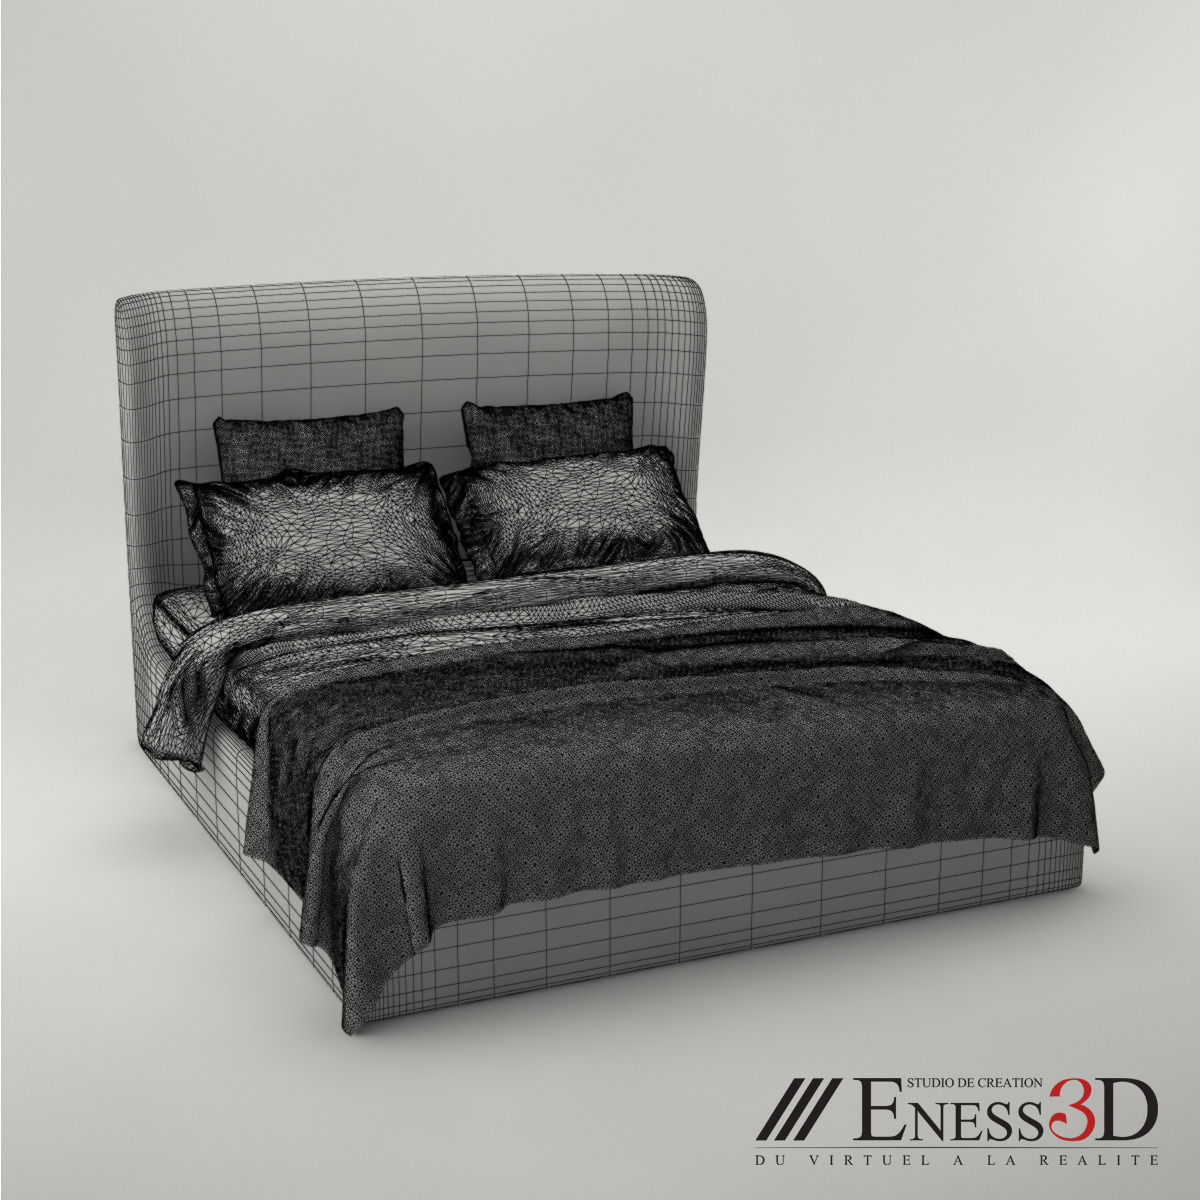 Pro Meridiani Loren Ghost Bed Model Max 5